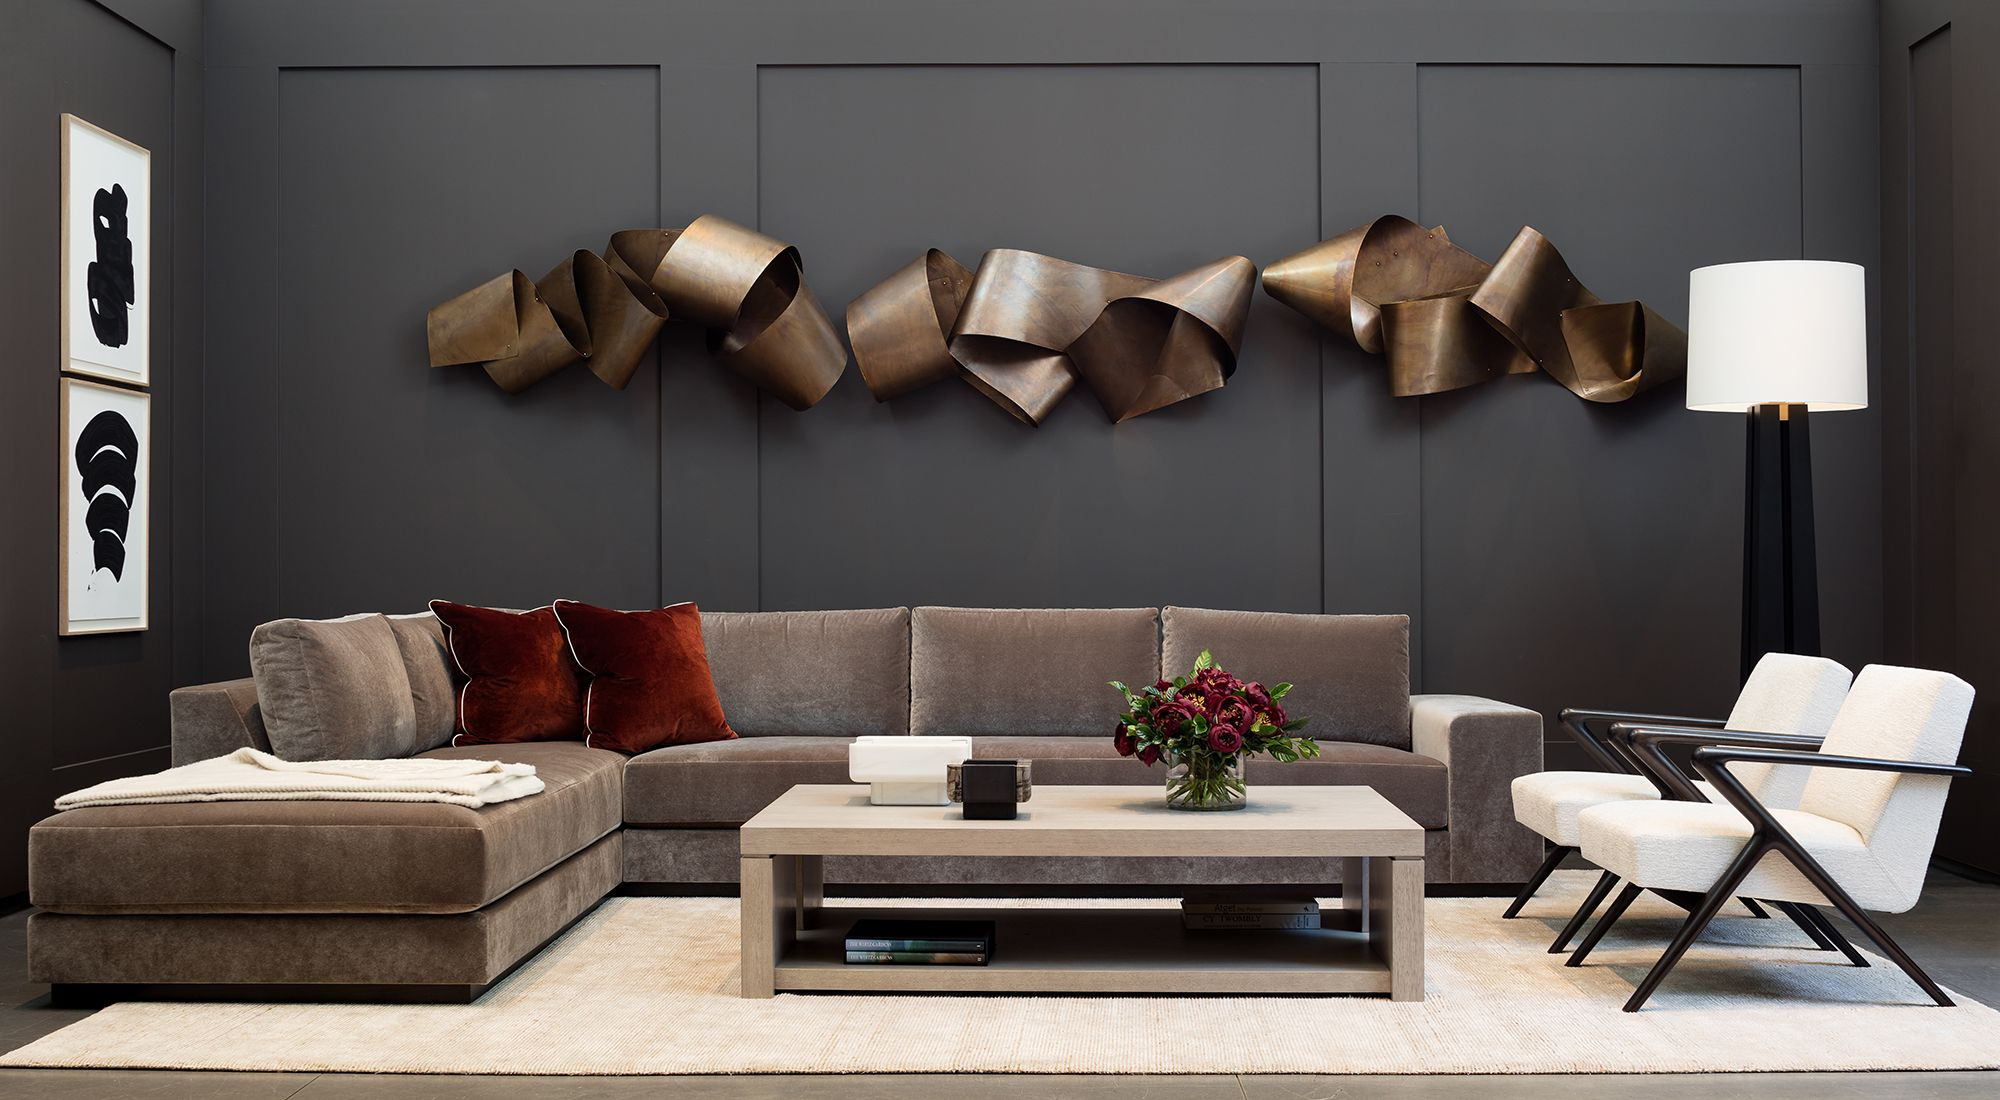 metal wall art decor for living room cheap design holly hunt modern sculpture in contemporary residential interior ideas